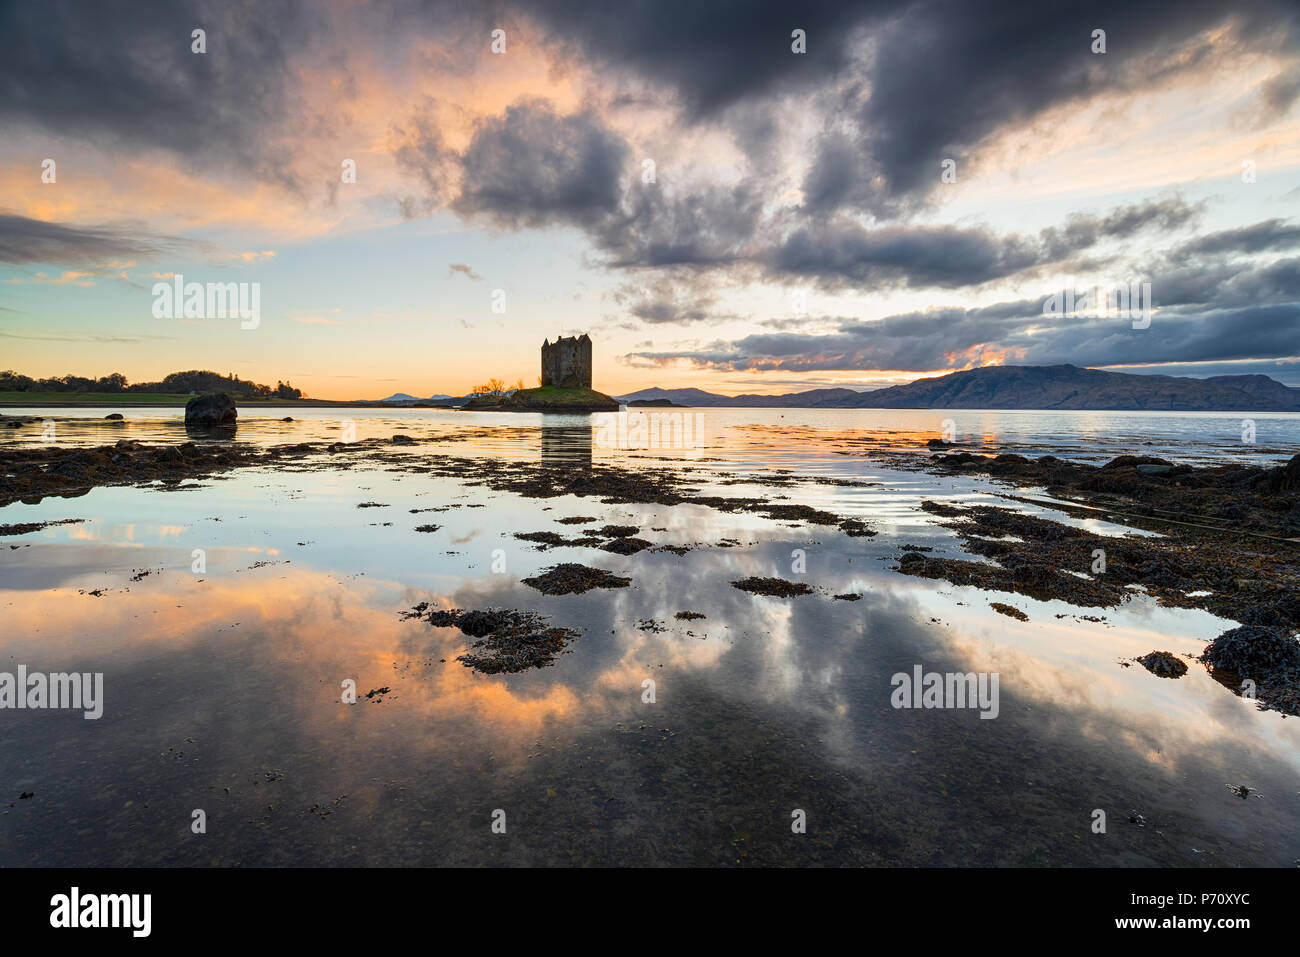 Dramatic sunset over Castle Stalker on Loch Linnhe in Scotland Stock Photo